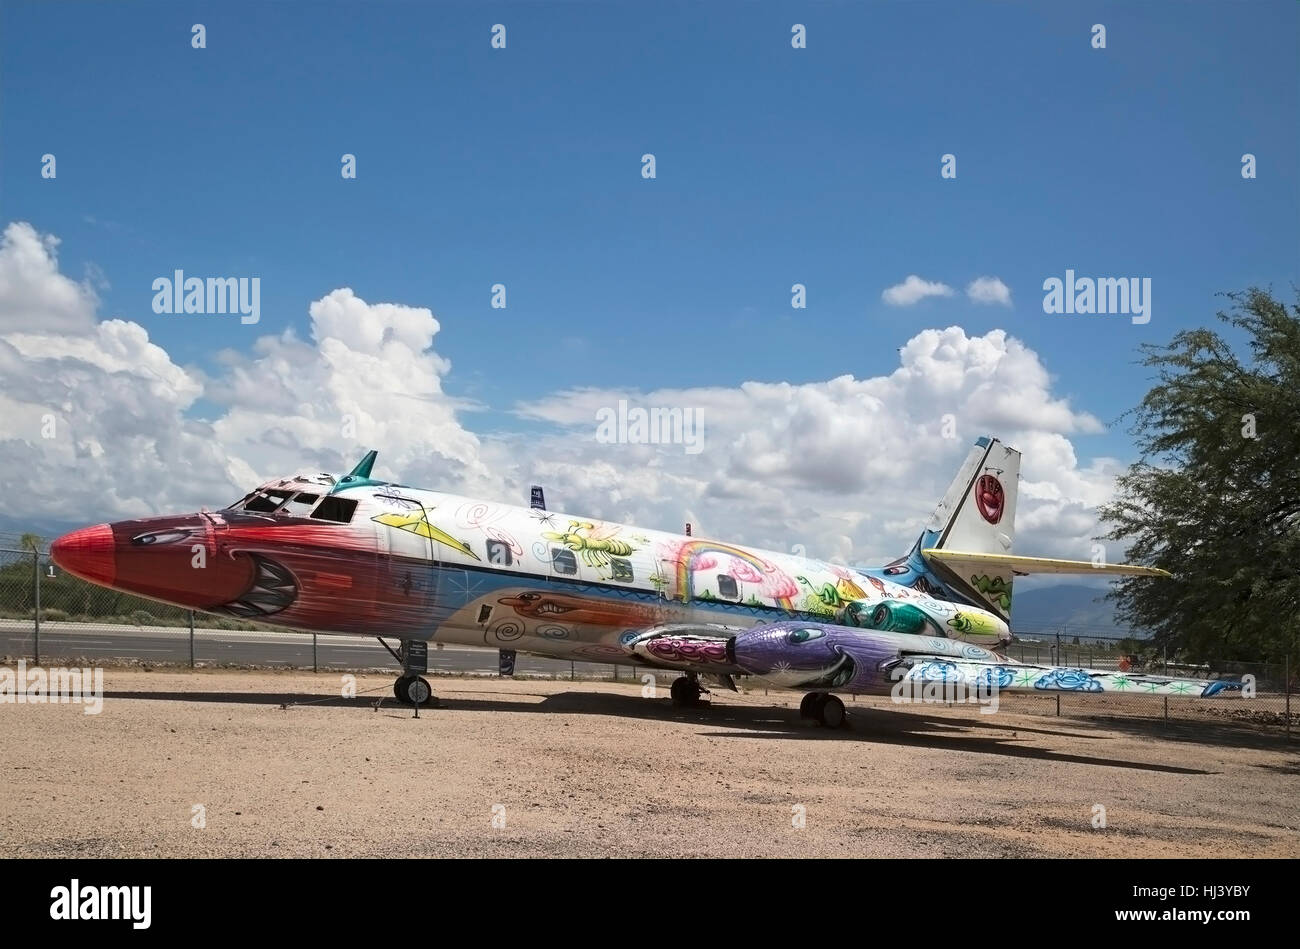 Aviation art on display at Pima Air & Space Museum - Stock Image